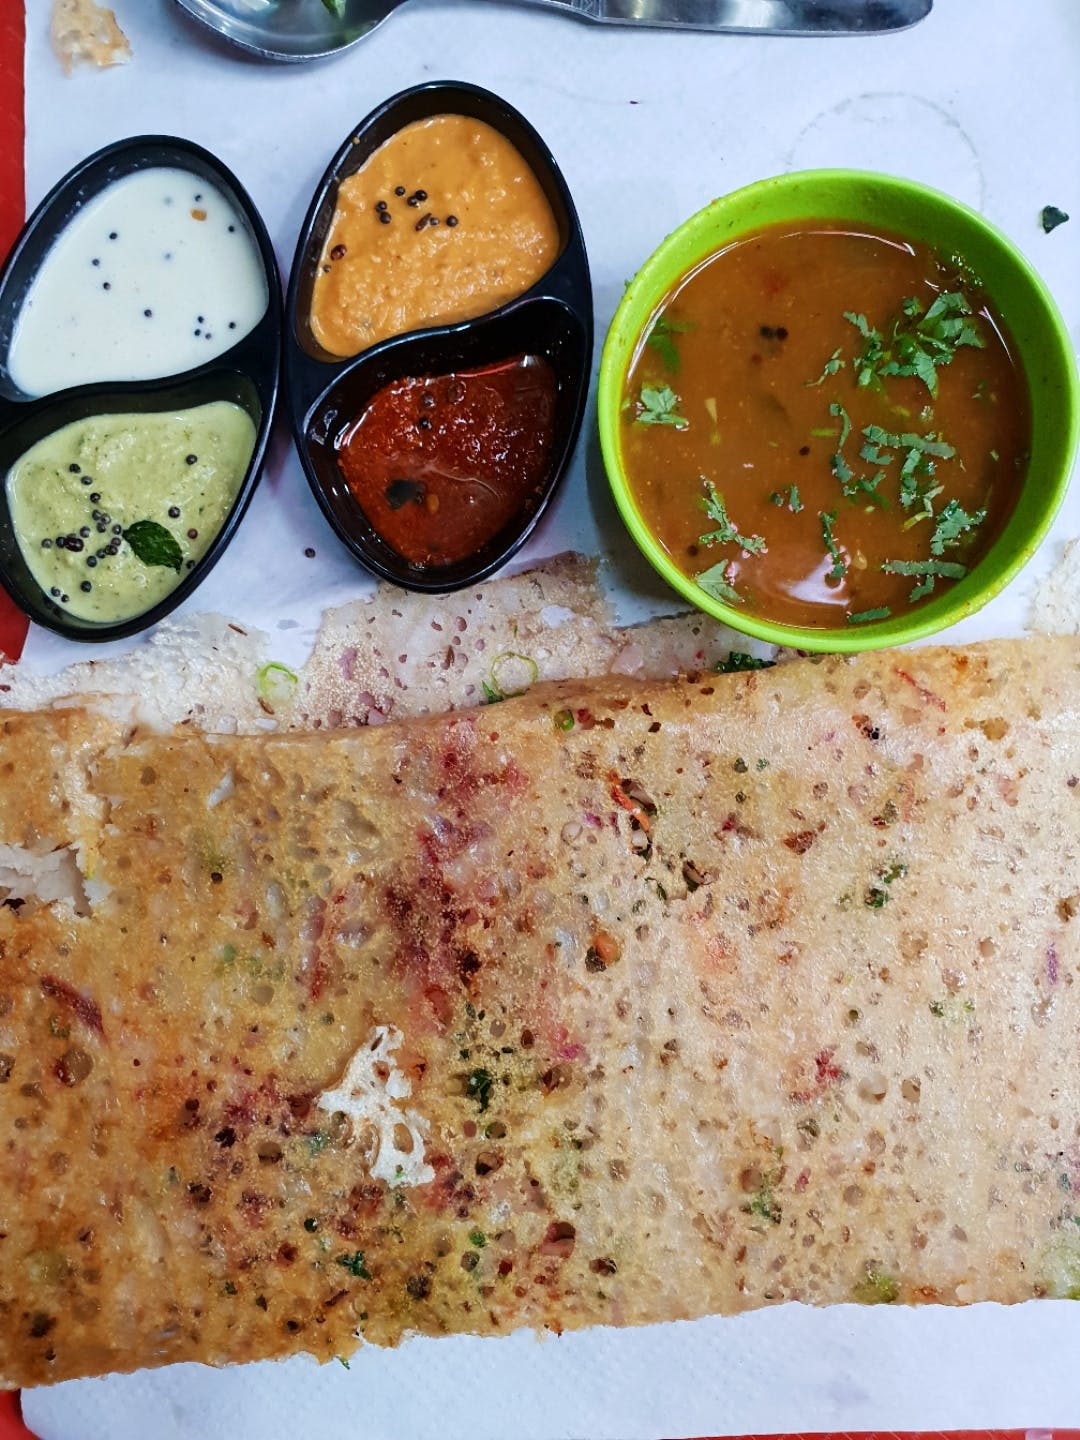 Dish,Cuisine,Food,Ingredient,Dosa,Raita,Chutney,Indian cuisine,Meal,Chapati